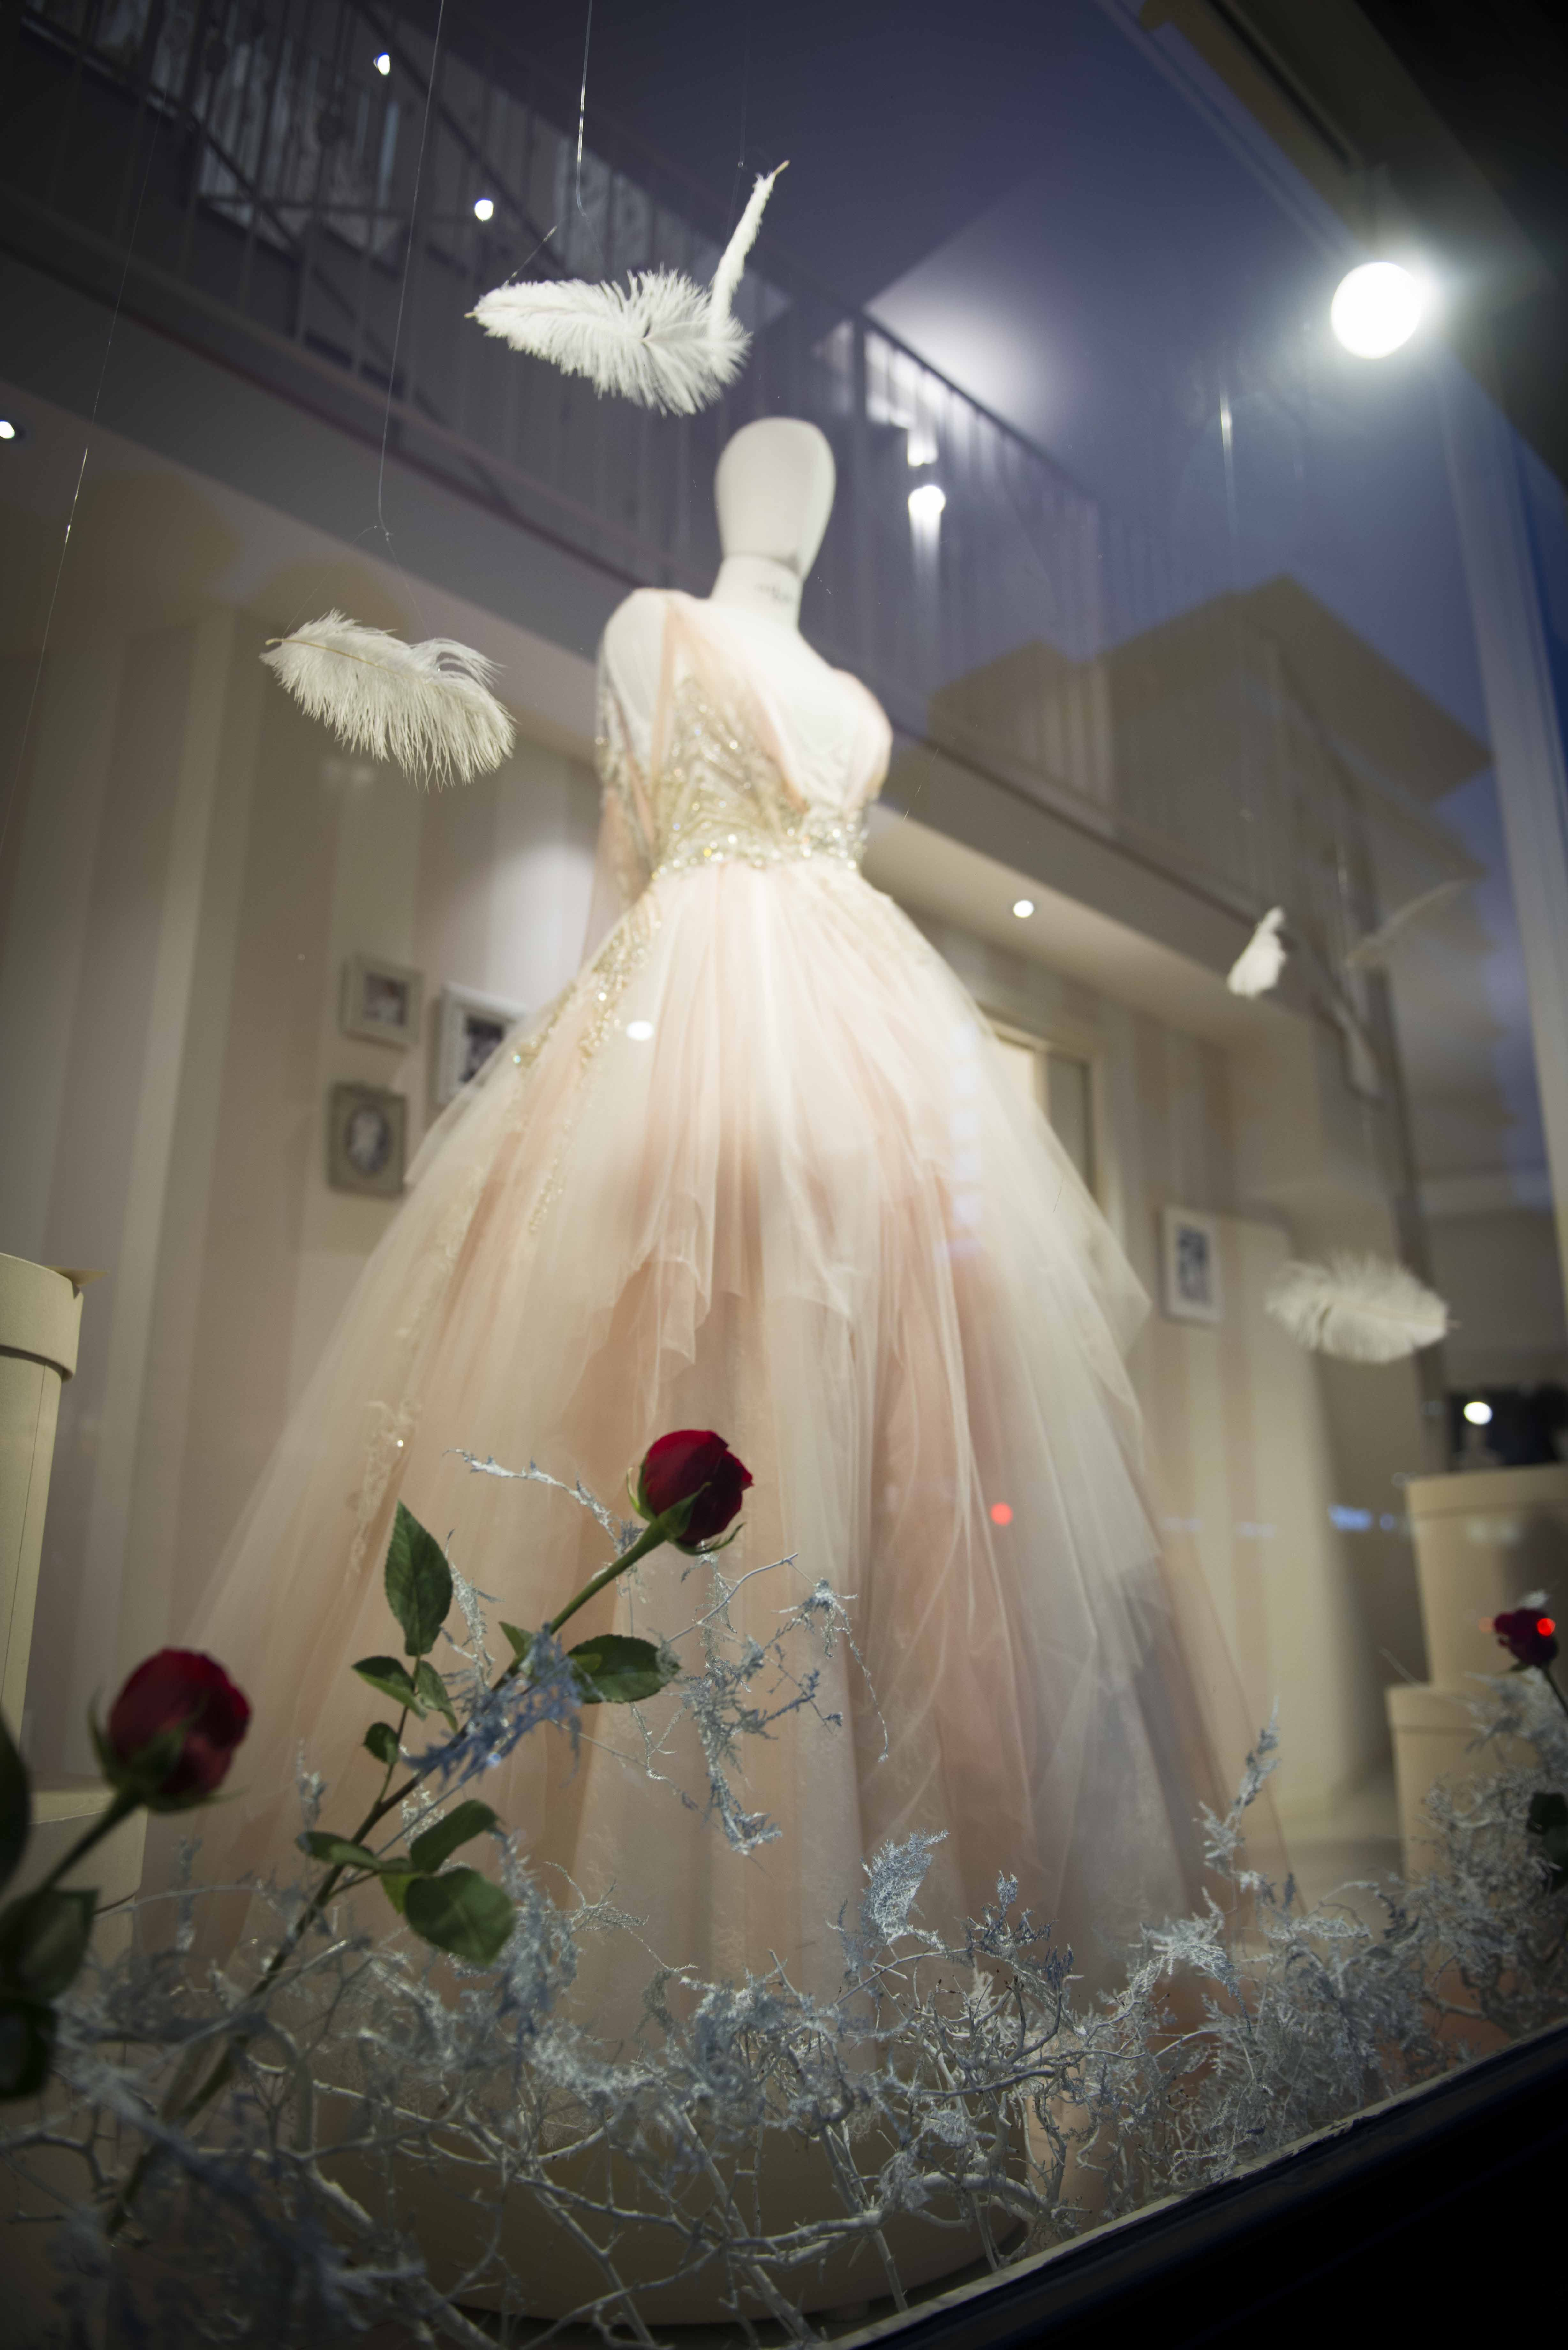 Royal themed wedding dresses  Pin by Save the Date on A Winter Garden  La nostra vetrina Le